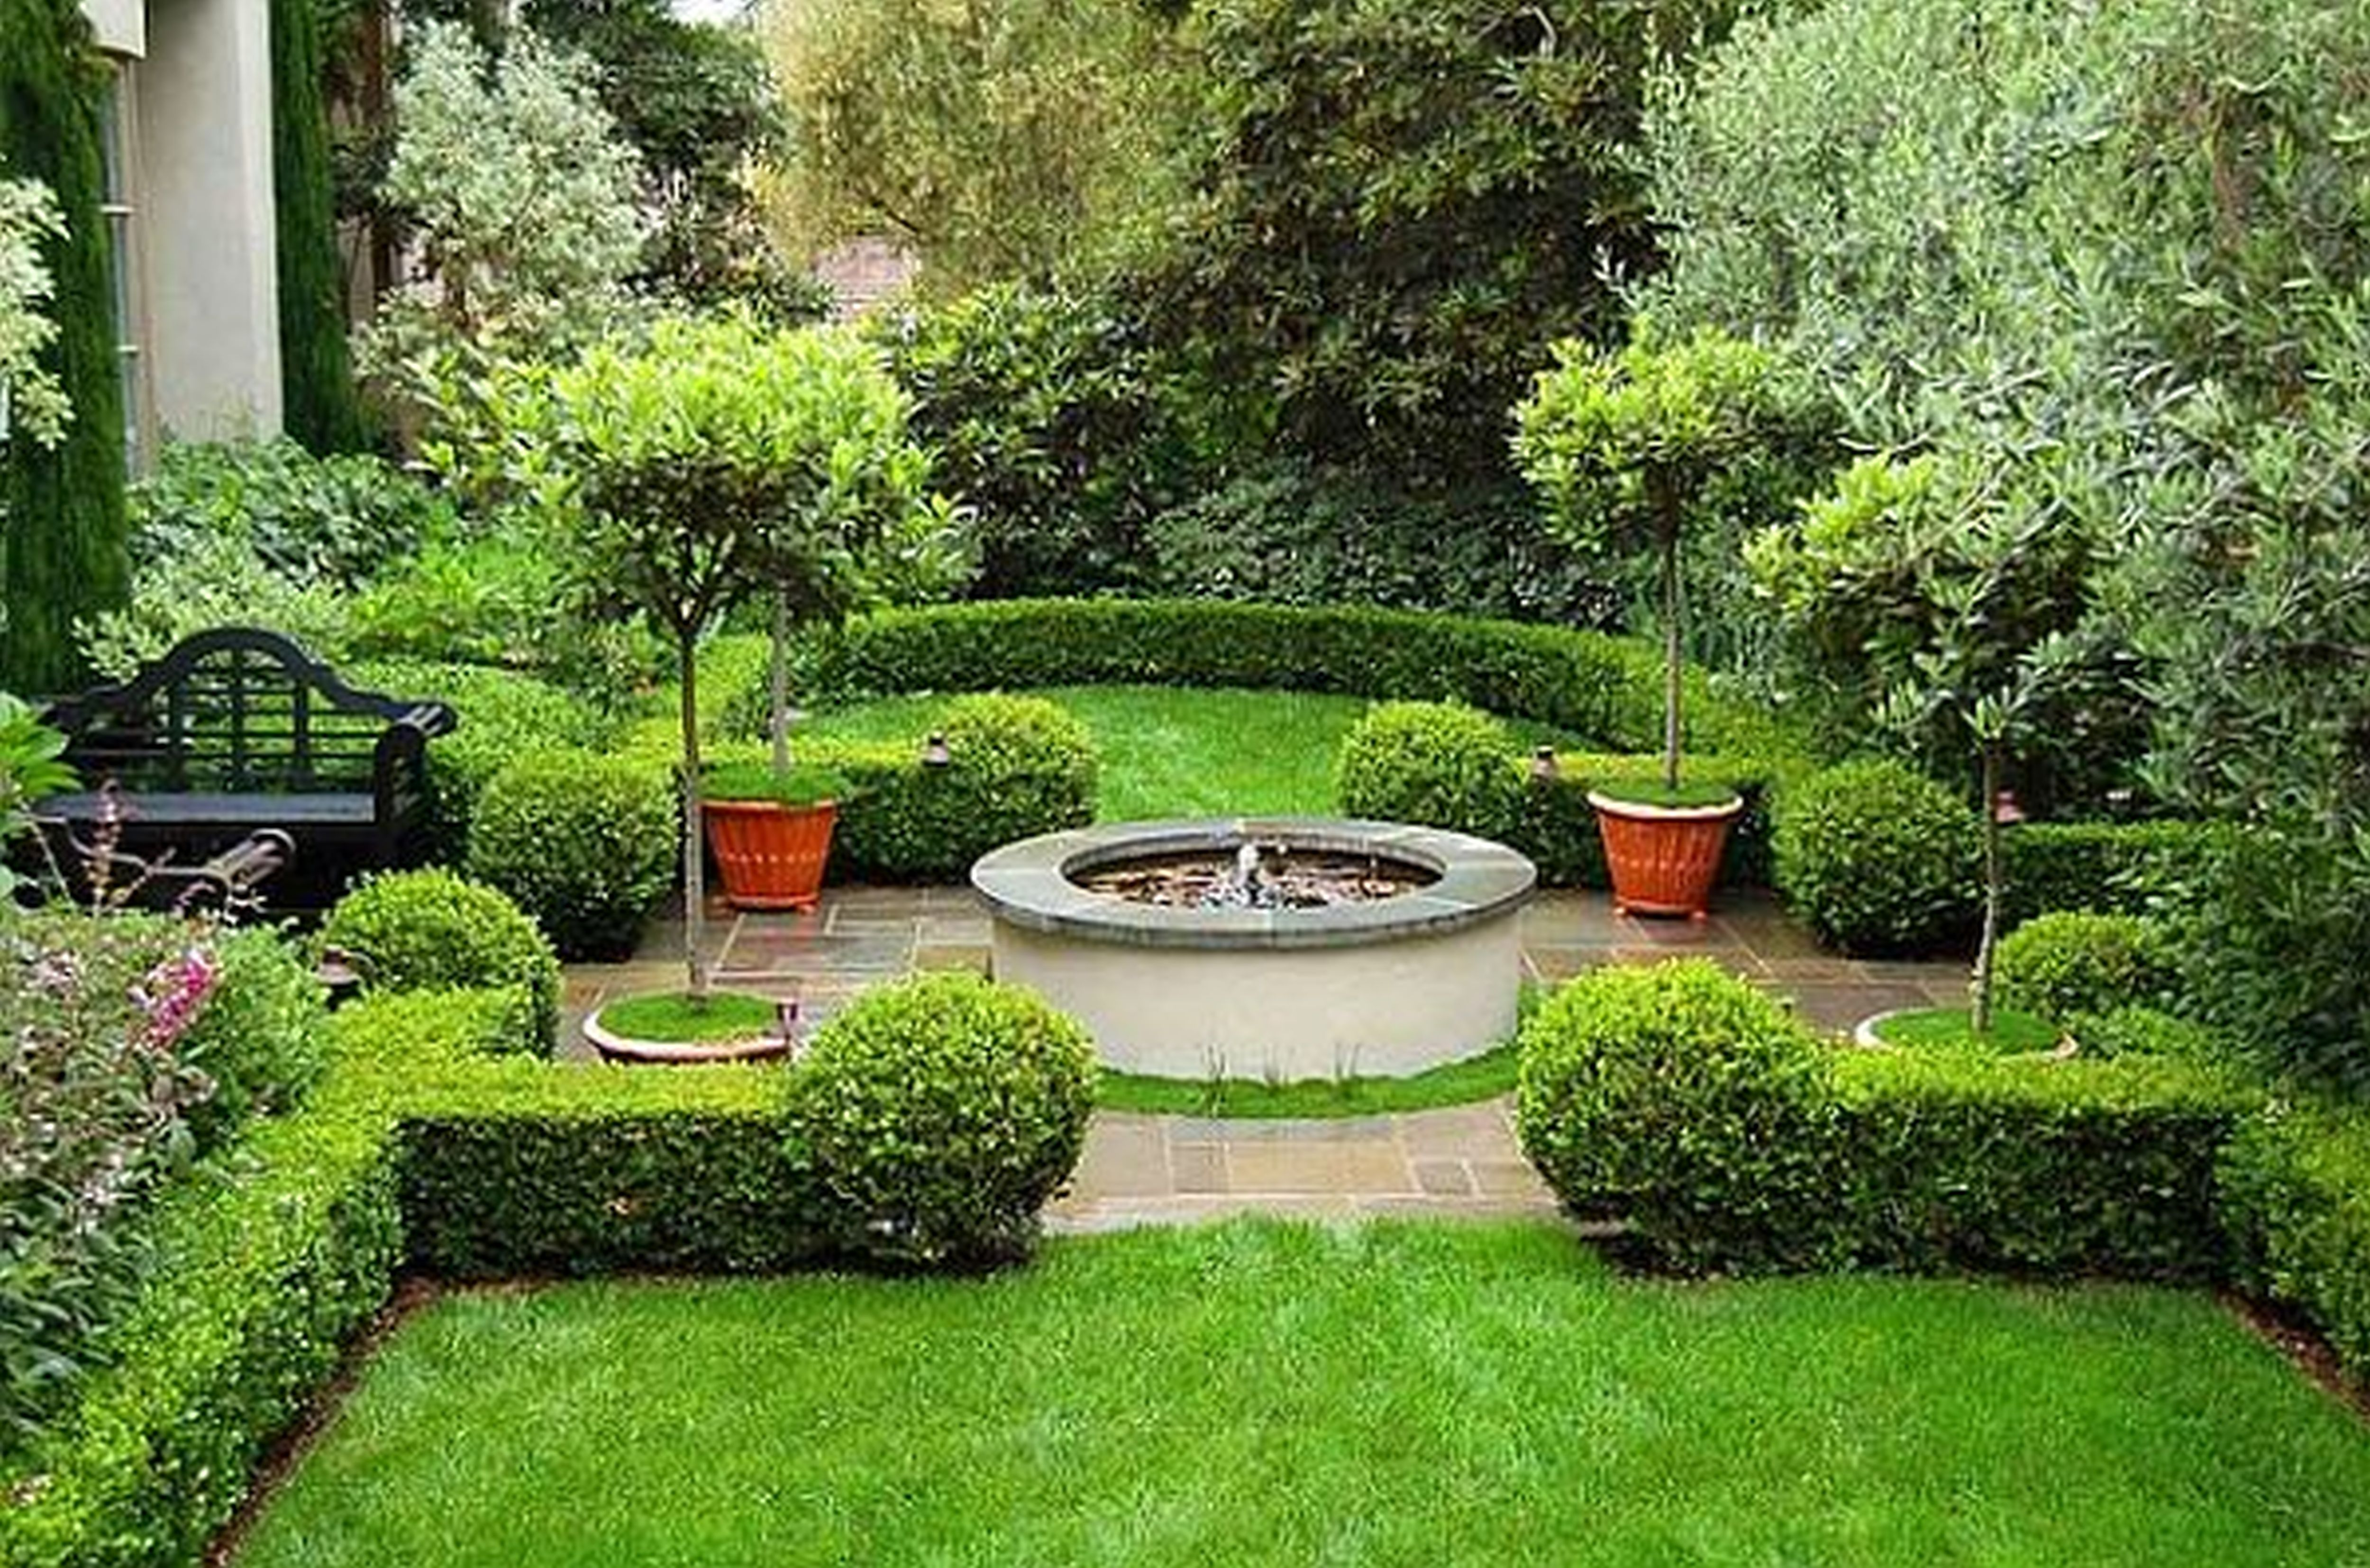 Planning landscaping organic garden landscaping for Yard landscaping ideas